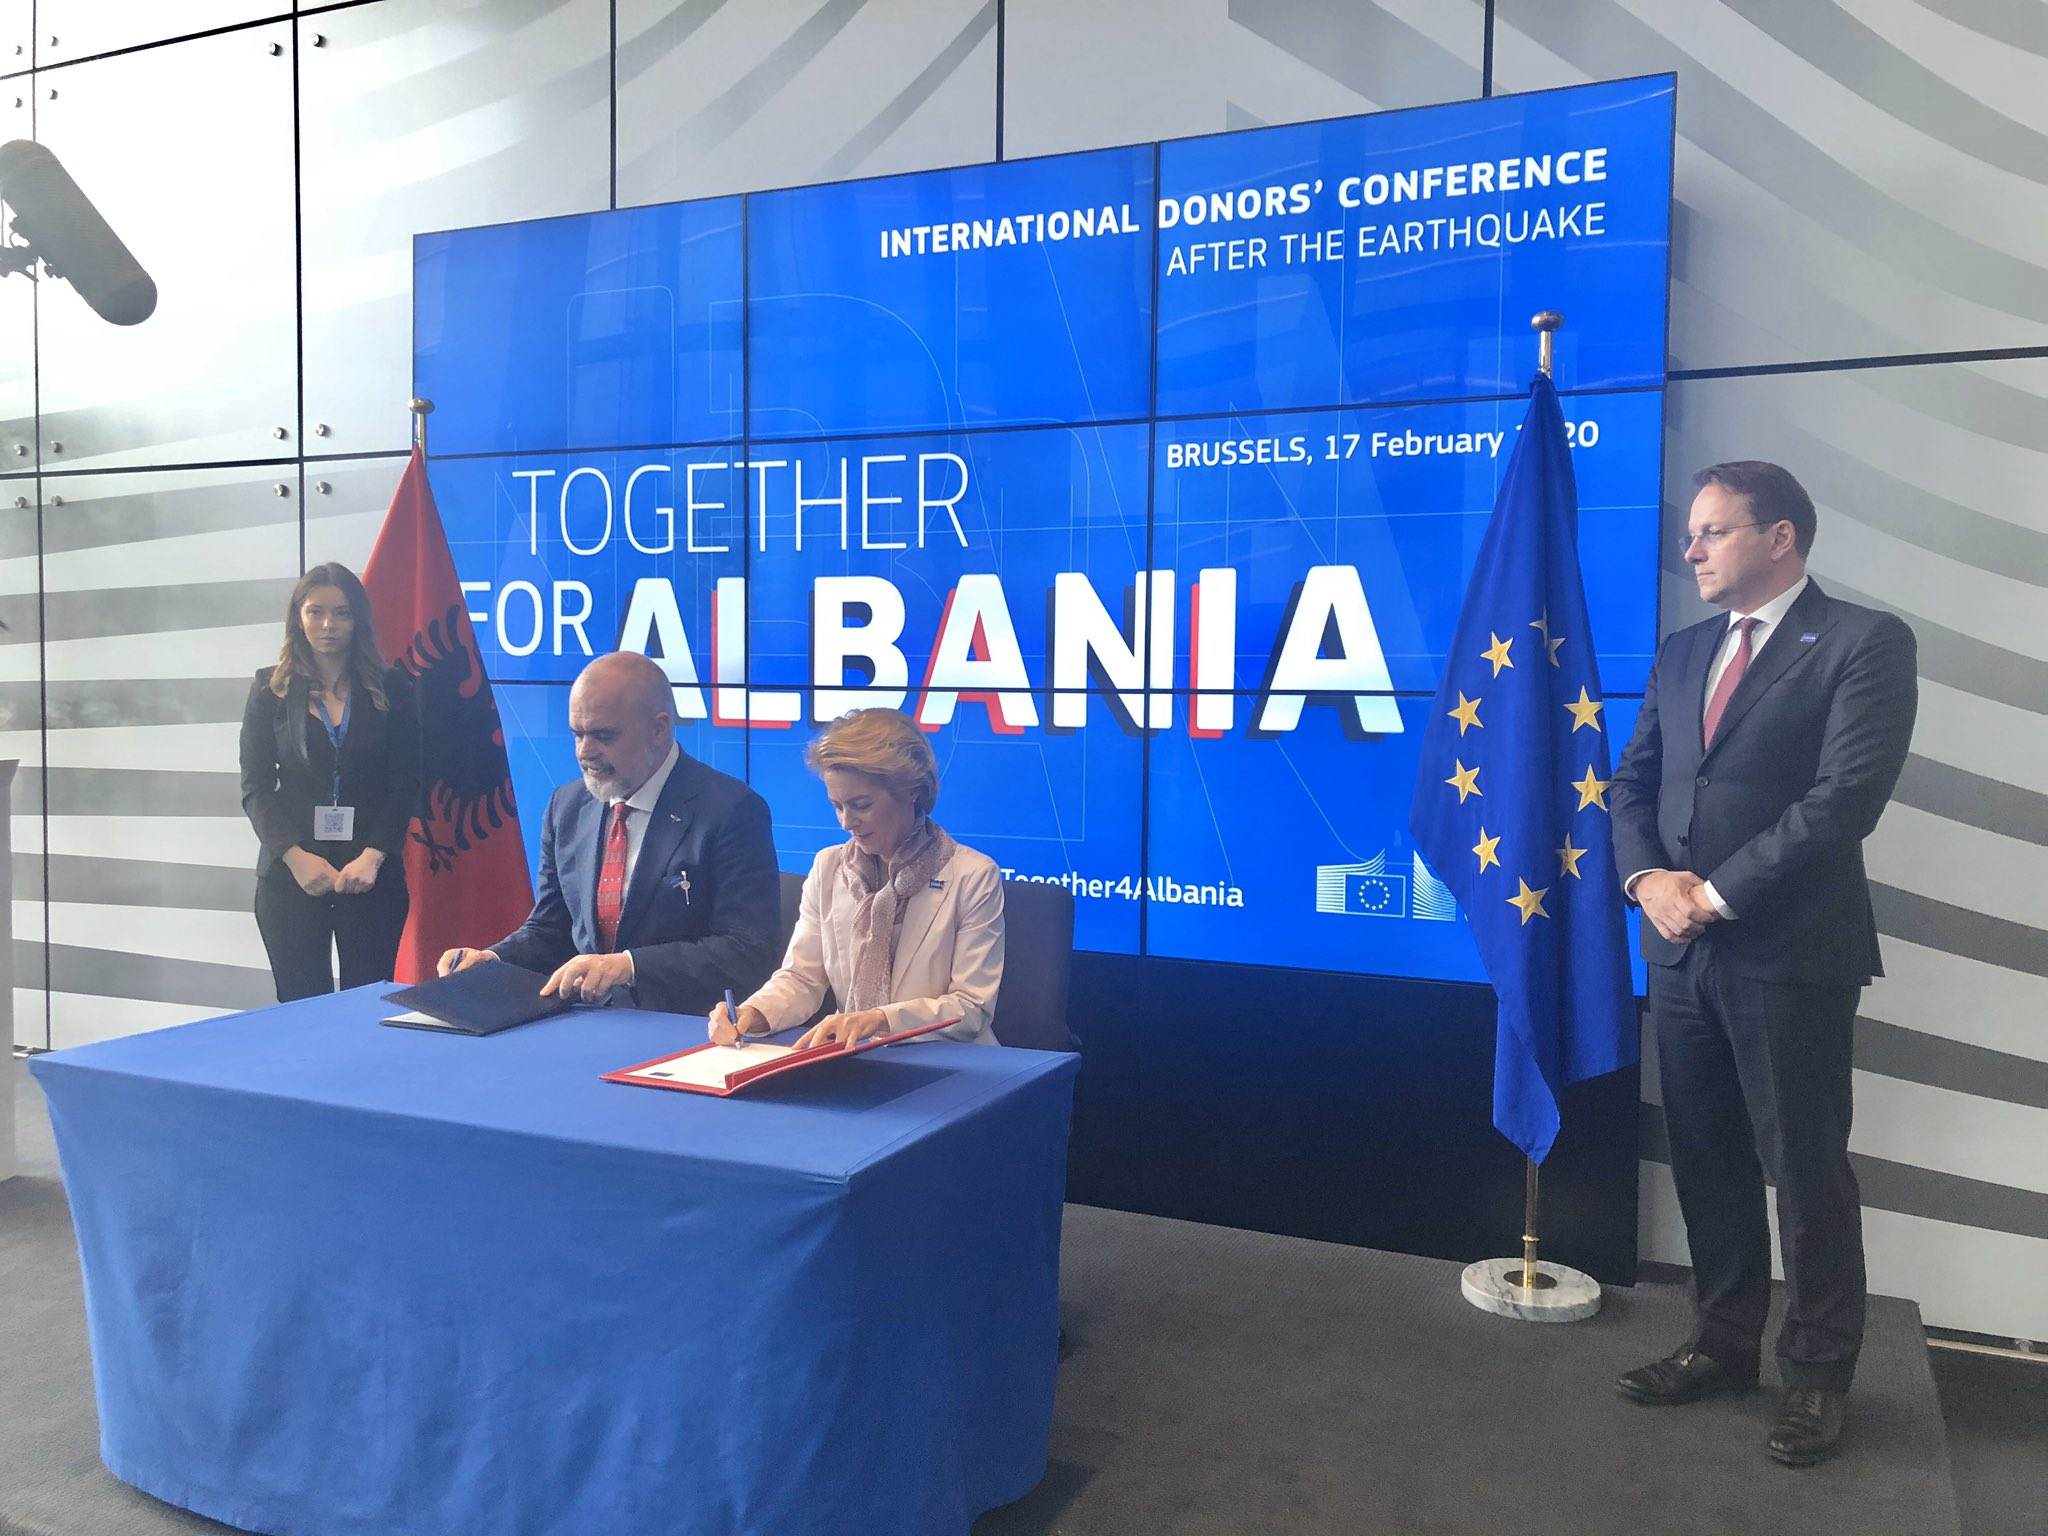 European Commission Approves €100 Million Package to Aid Albania's Post-Earthquake Reconstruction